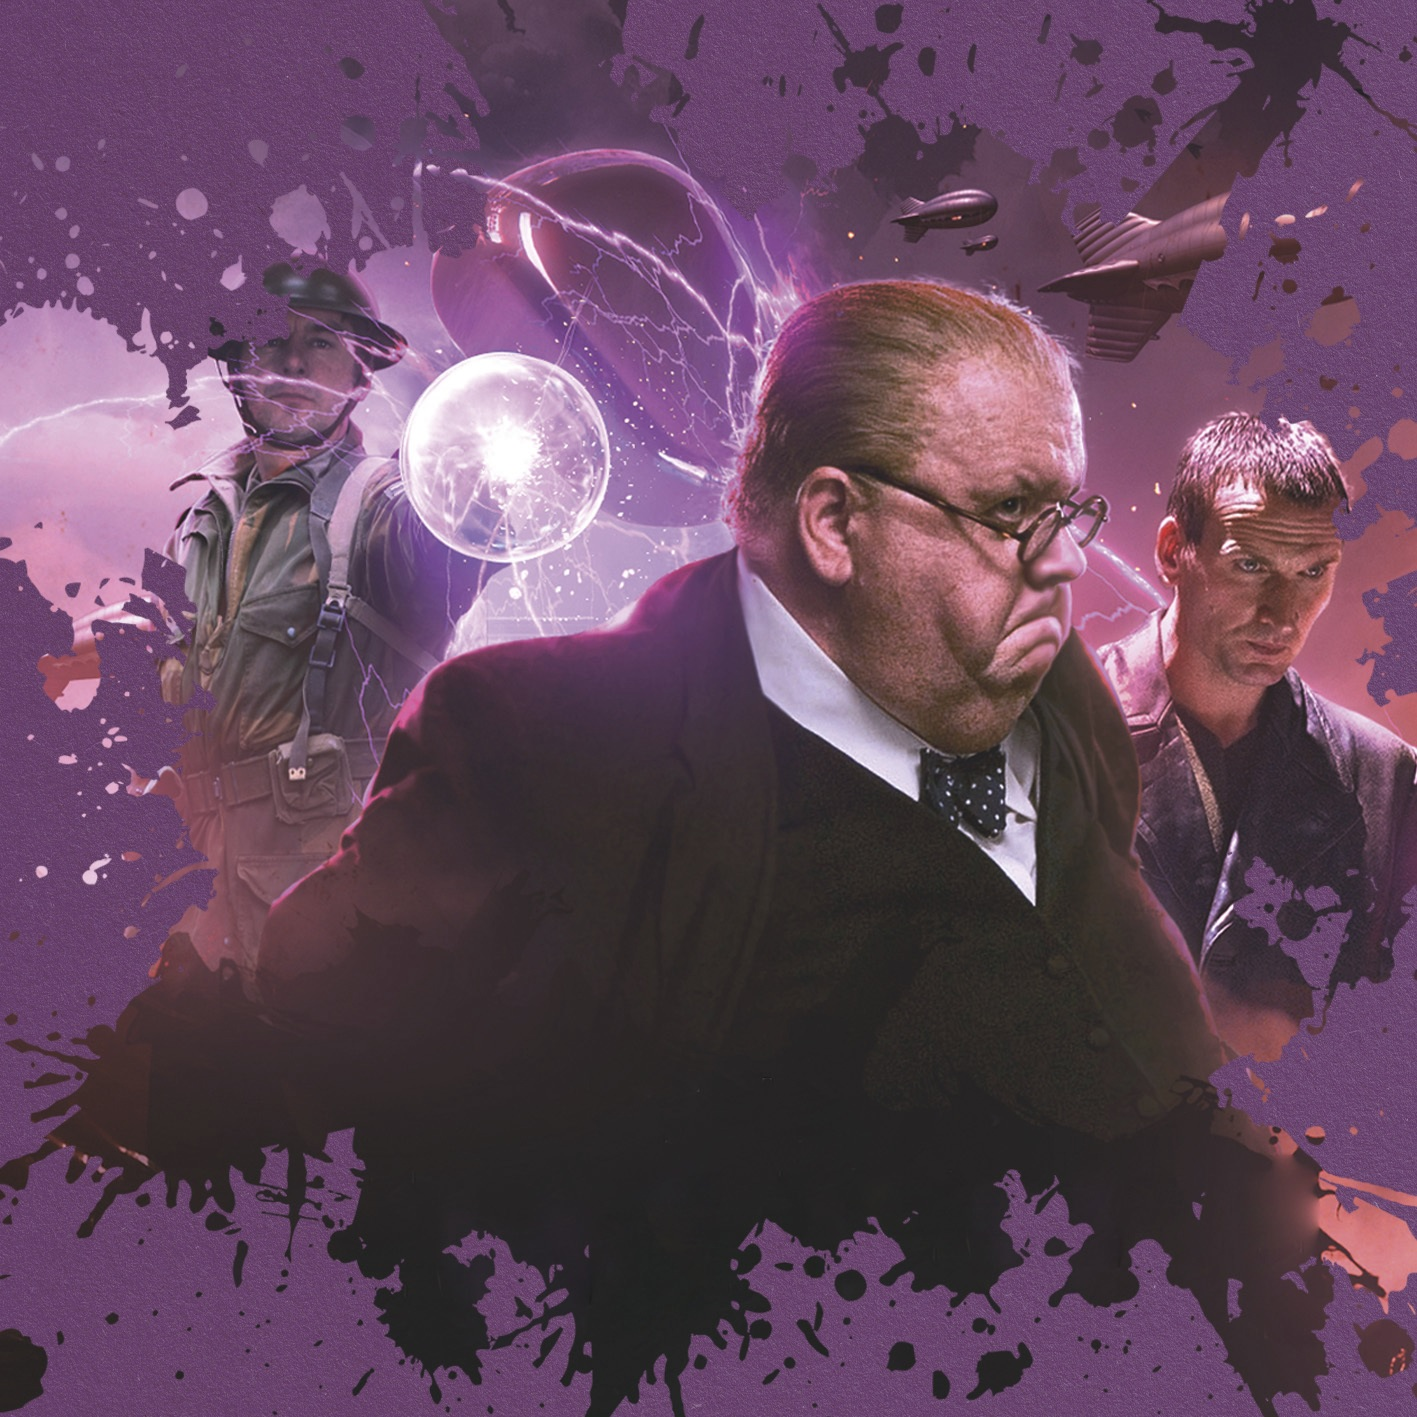 For One Week Only: Download The Churchill Years – The Oncoming Storm For Free!